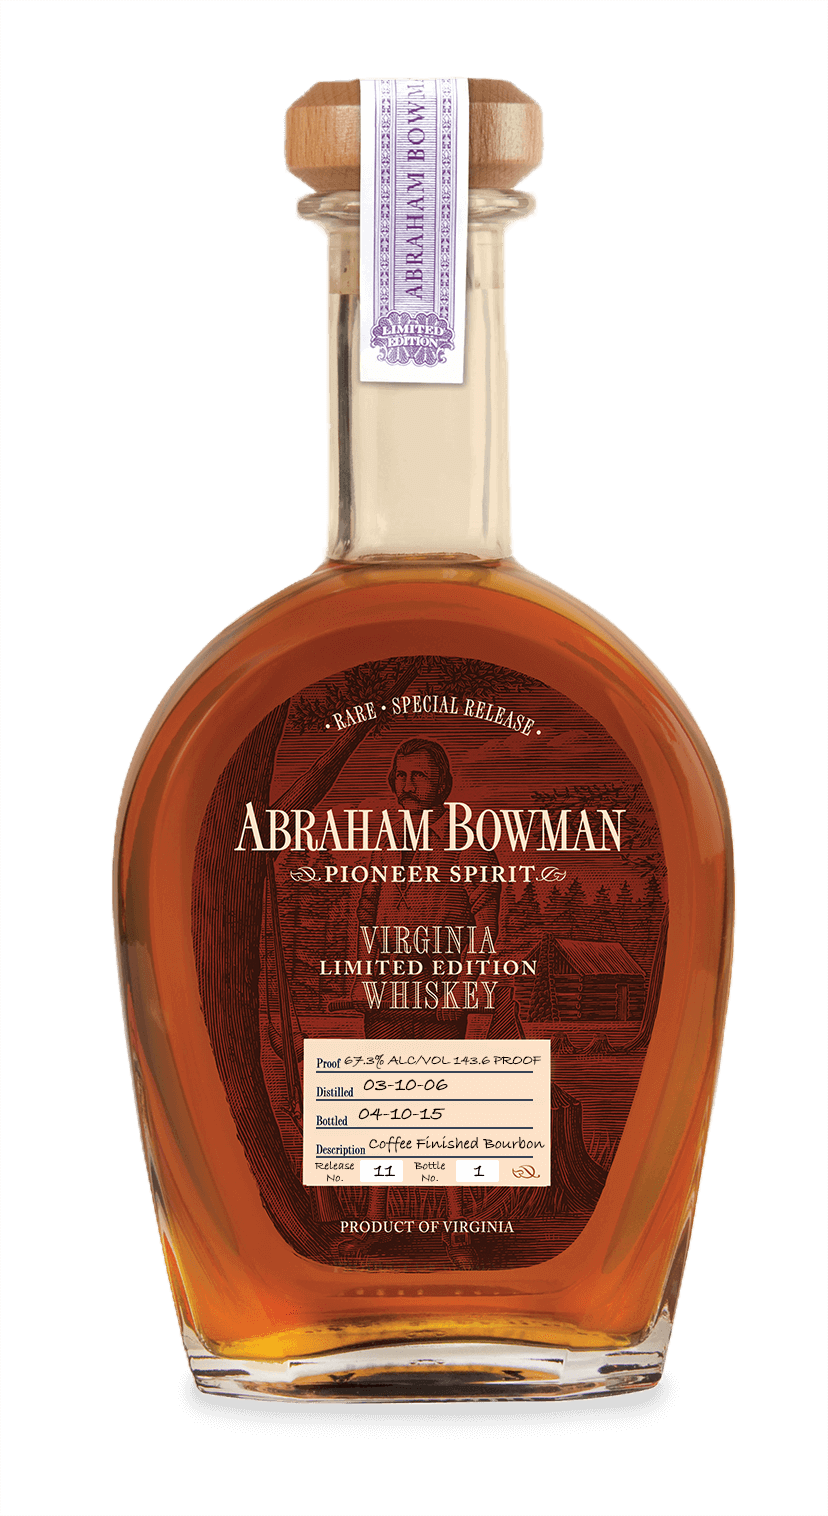 11 - A Smith Bowman - Coffee Finished Bourbon